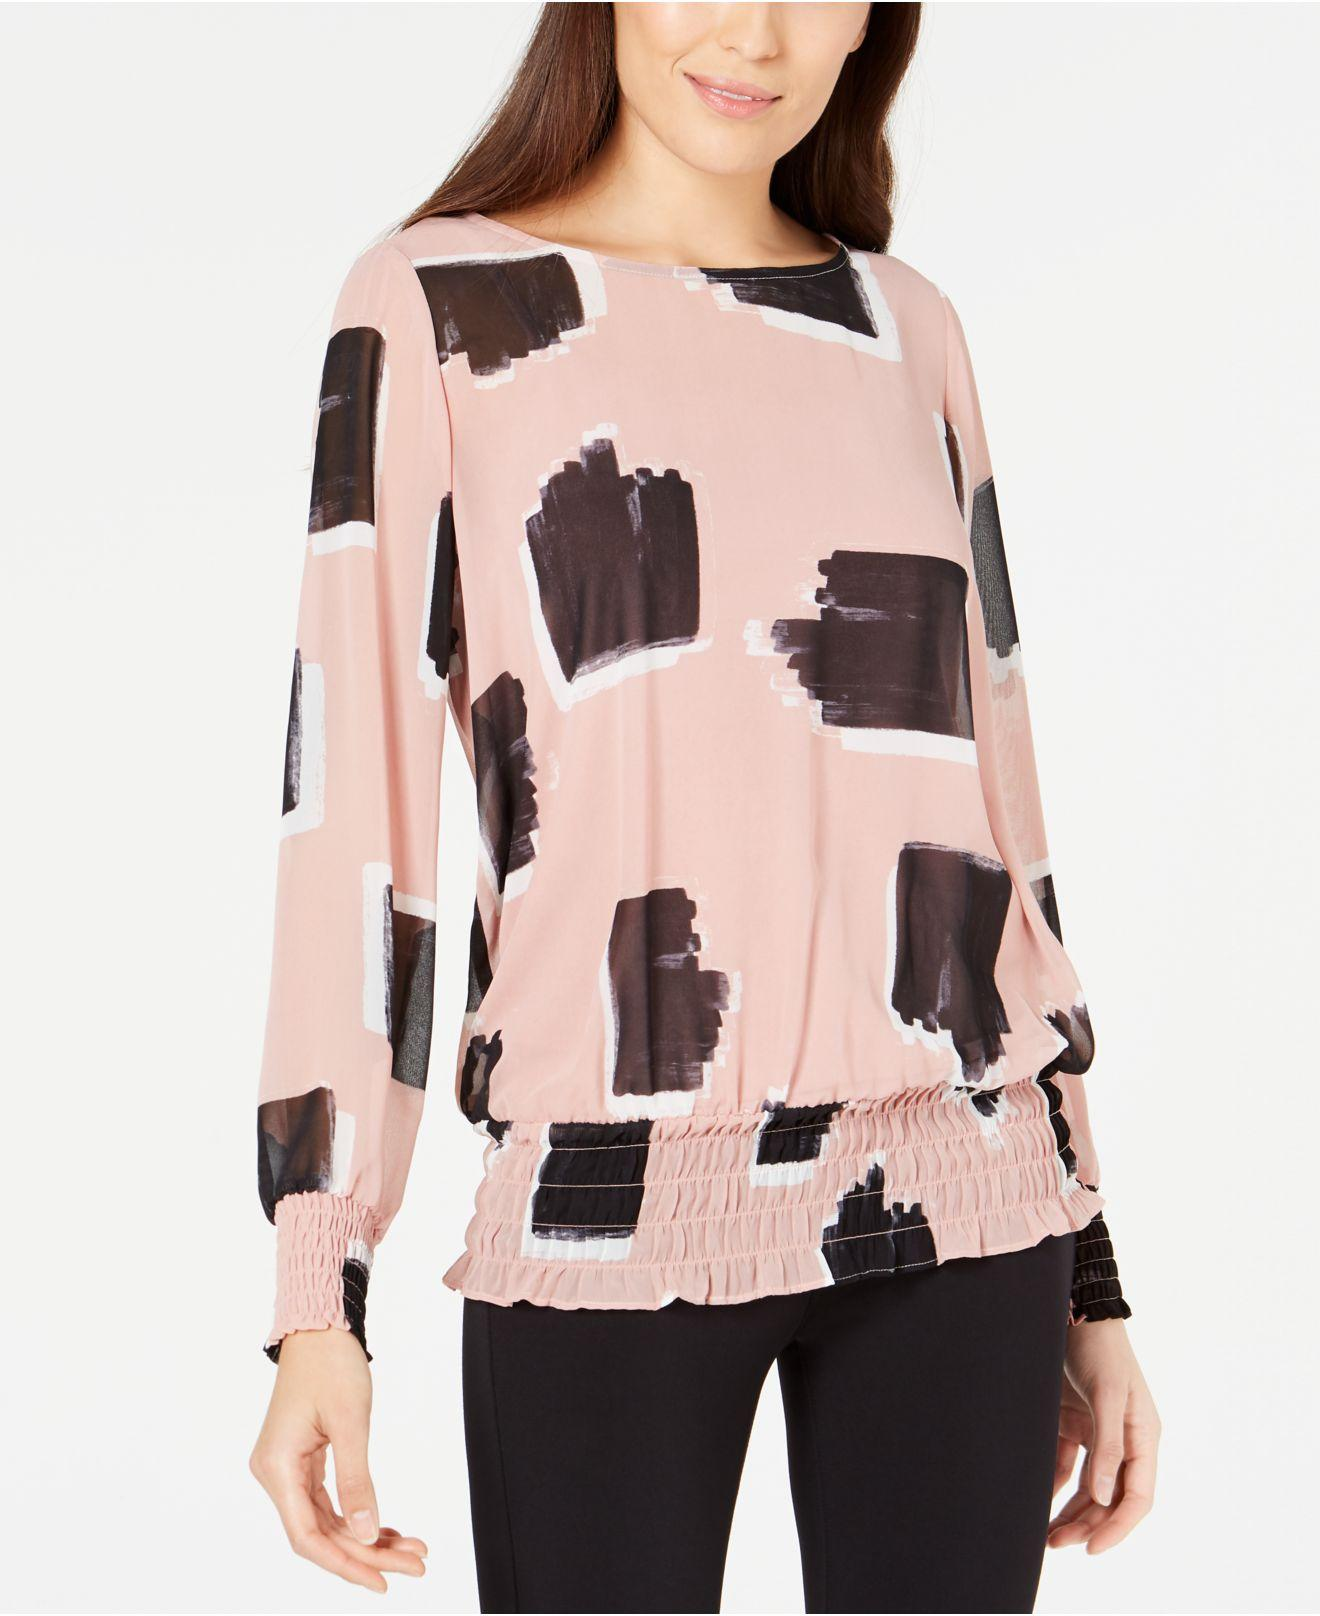 817bec91a83 Lyst - Alfani Petite Printed Smocked Top, Created For Macy's in Pink